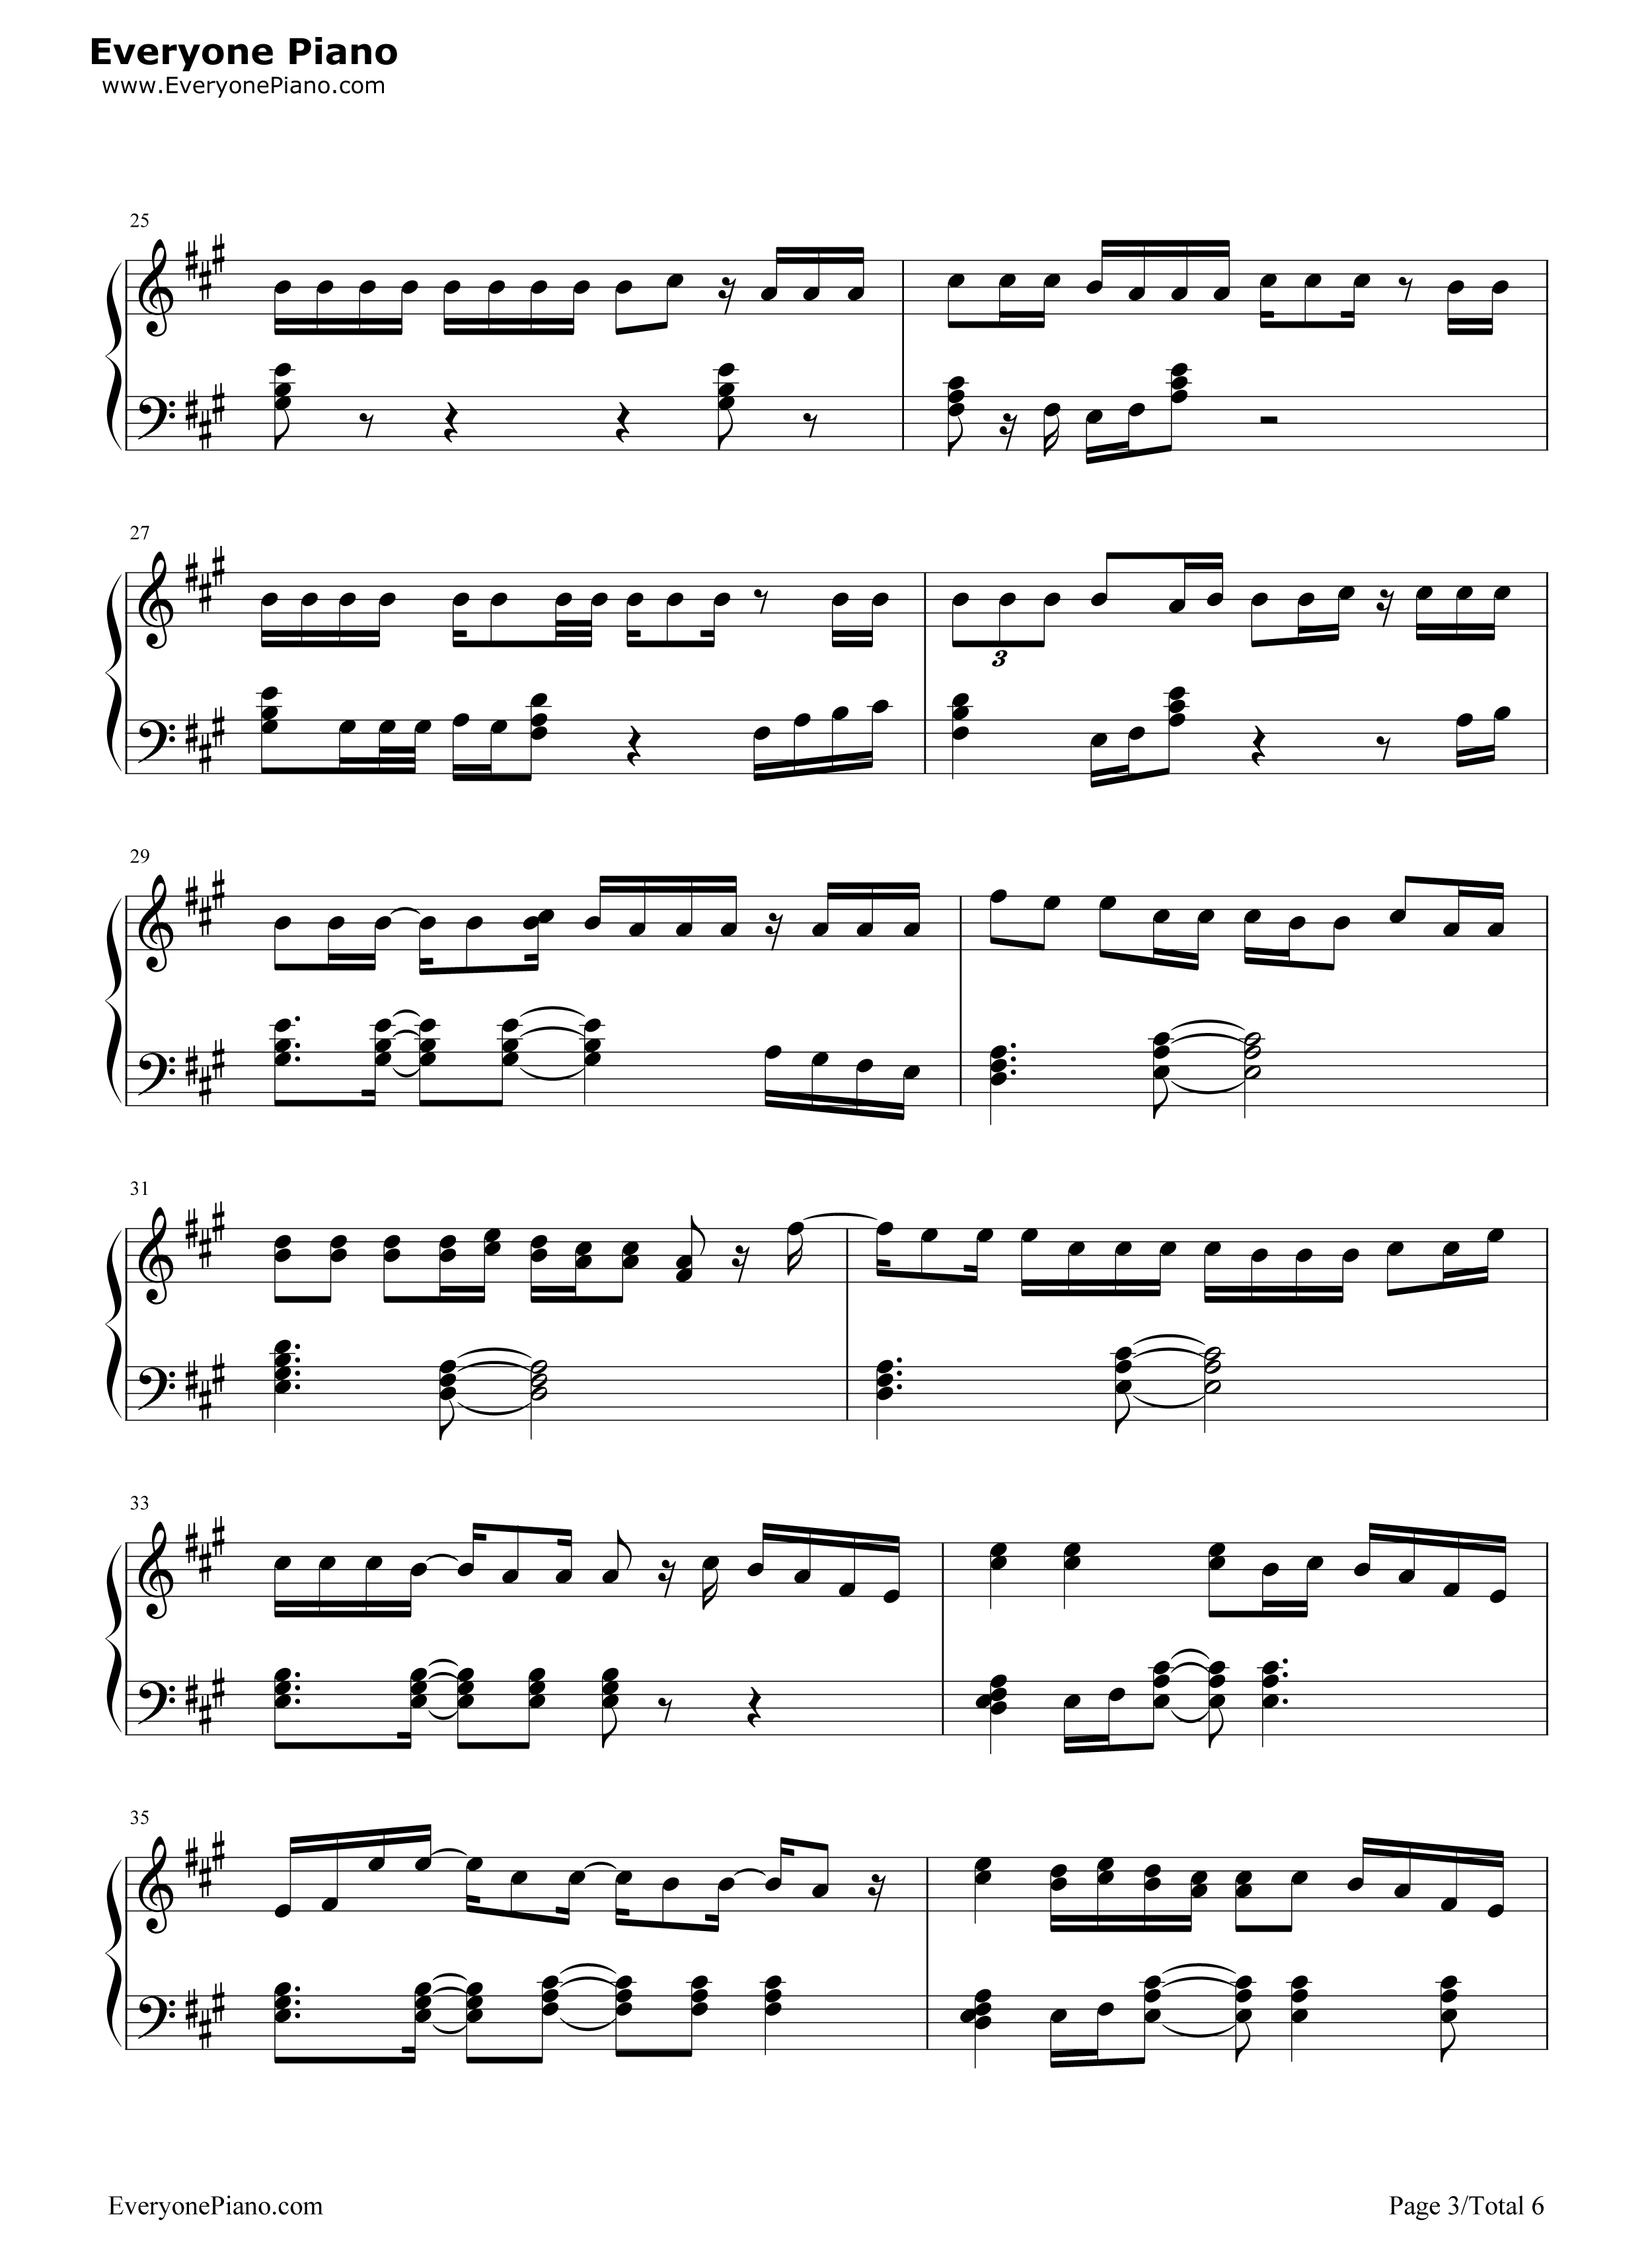 Galway girl ed sheeran stave preview 3 free piano sheet music listen now print sheet galway girl ed sheeran stave preview 3 hexwebz Images